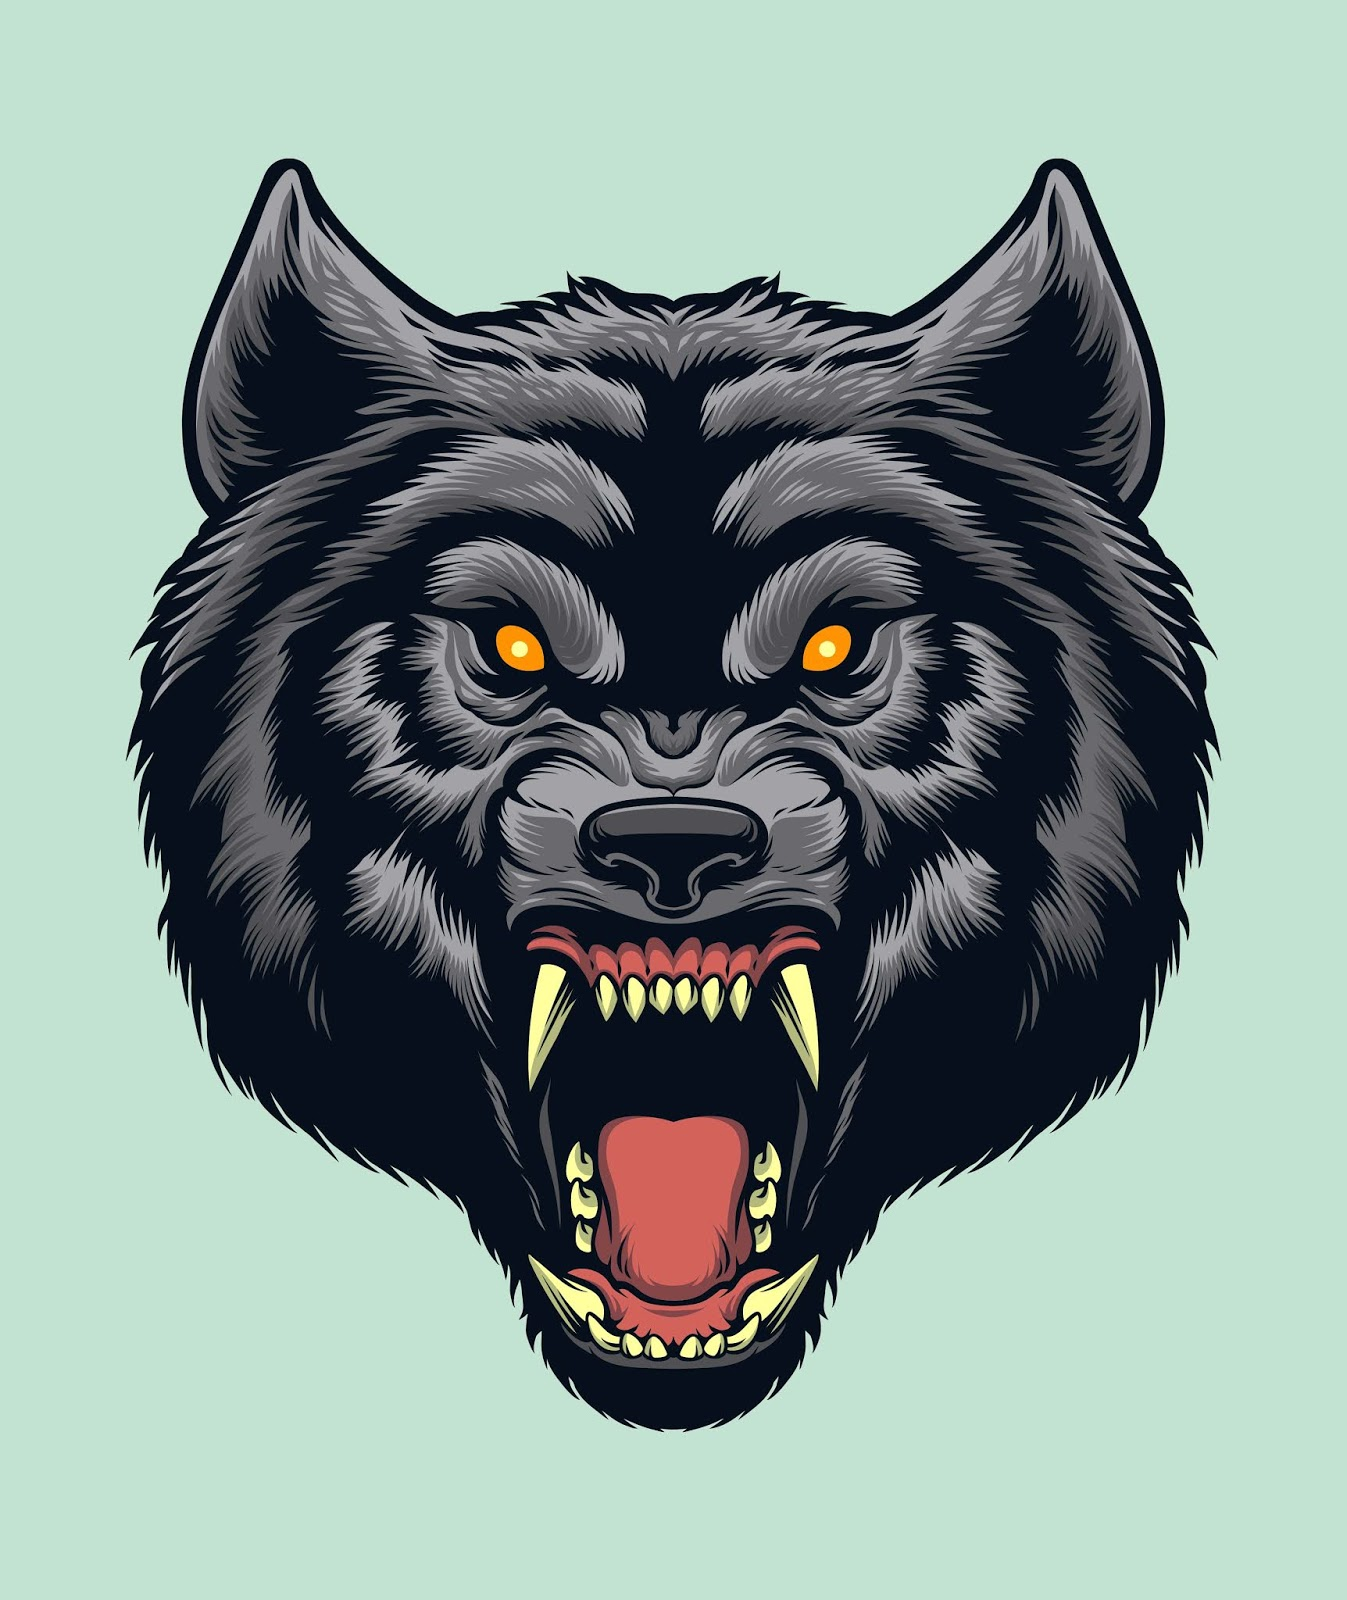 Angry Wolf Head Illustration Free Download Vector CDR, AI, EPS and PNG Formats